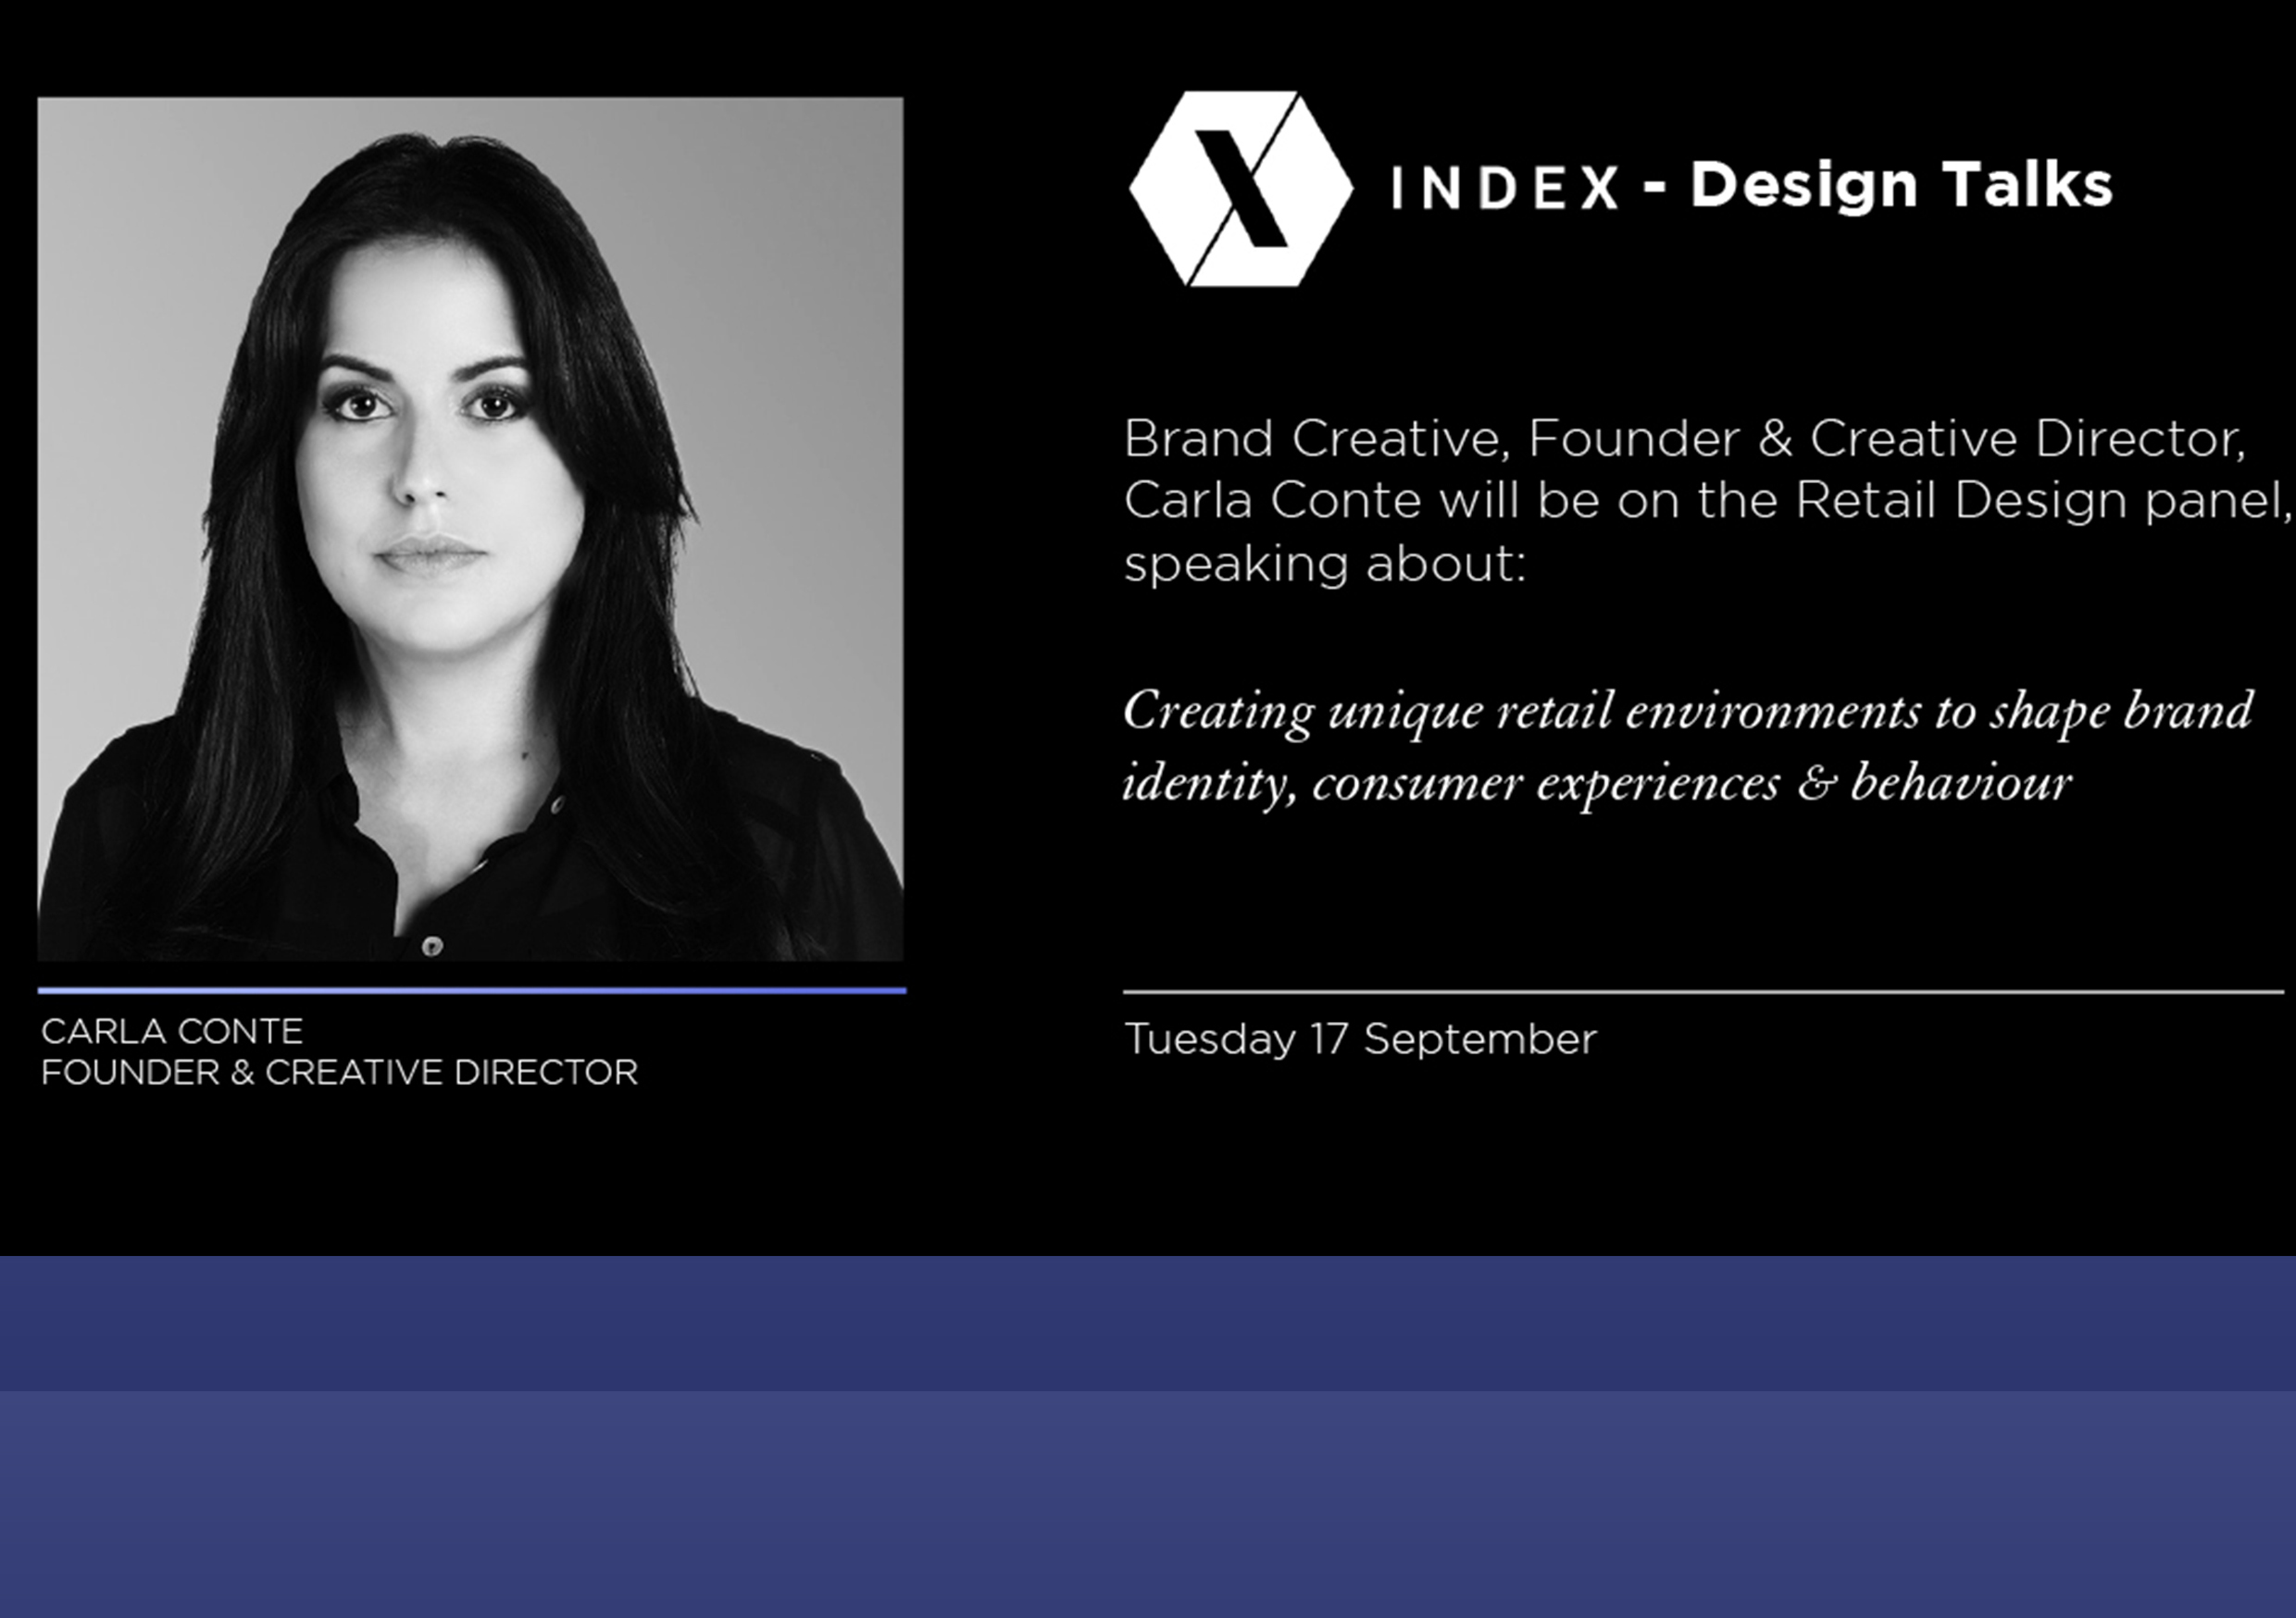 Carla featured as a panel speaker at the Index design talks 2019